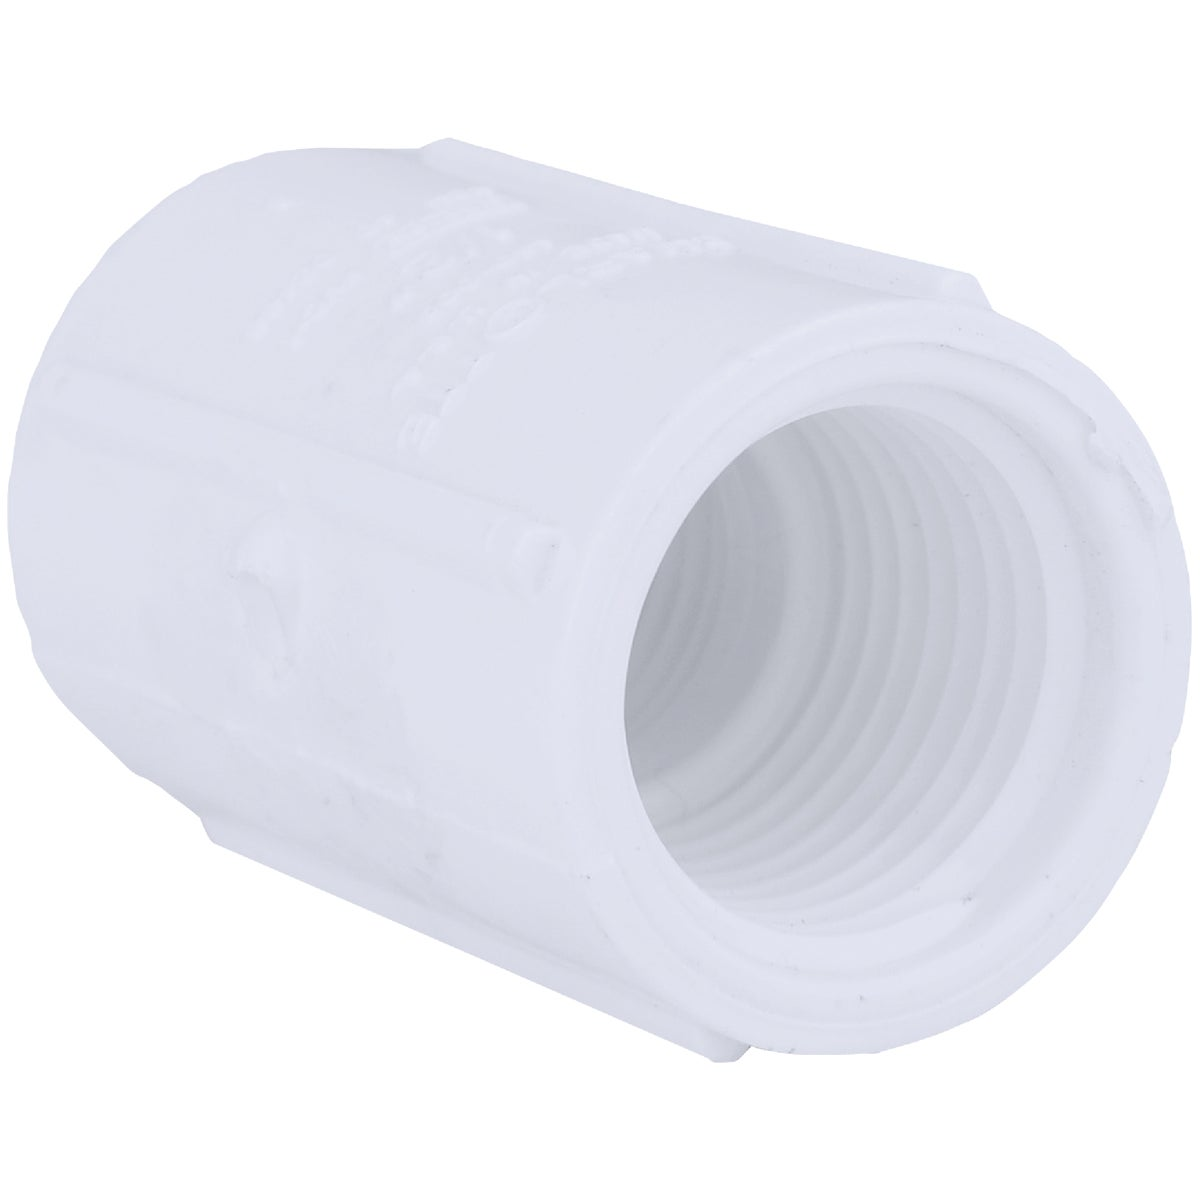 "1/2"" SCH40 FIP COUPLING - 30125 by Genova Inc"